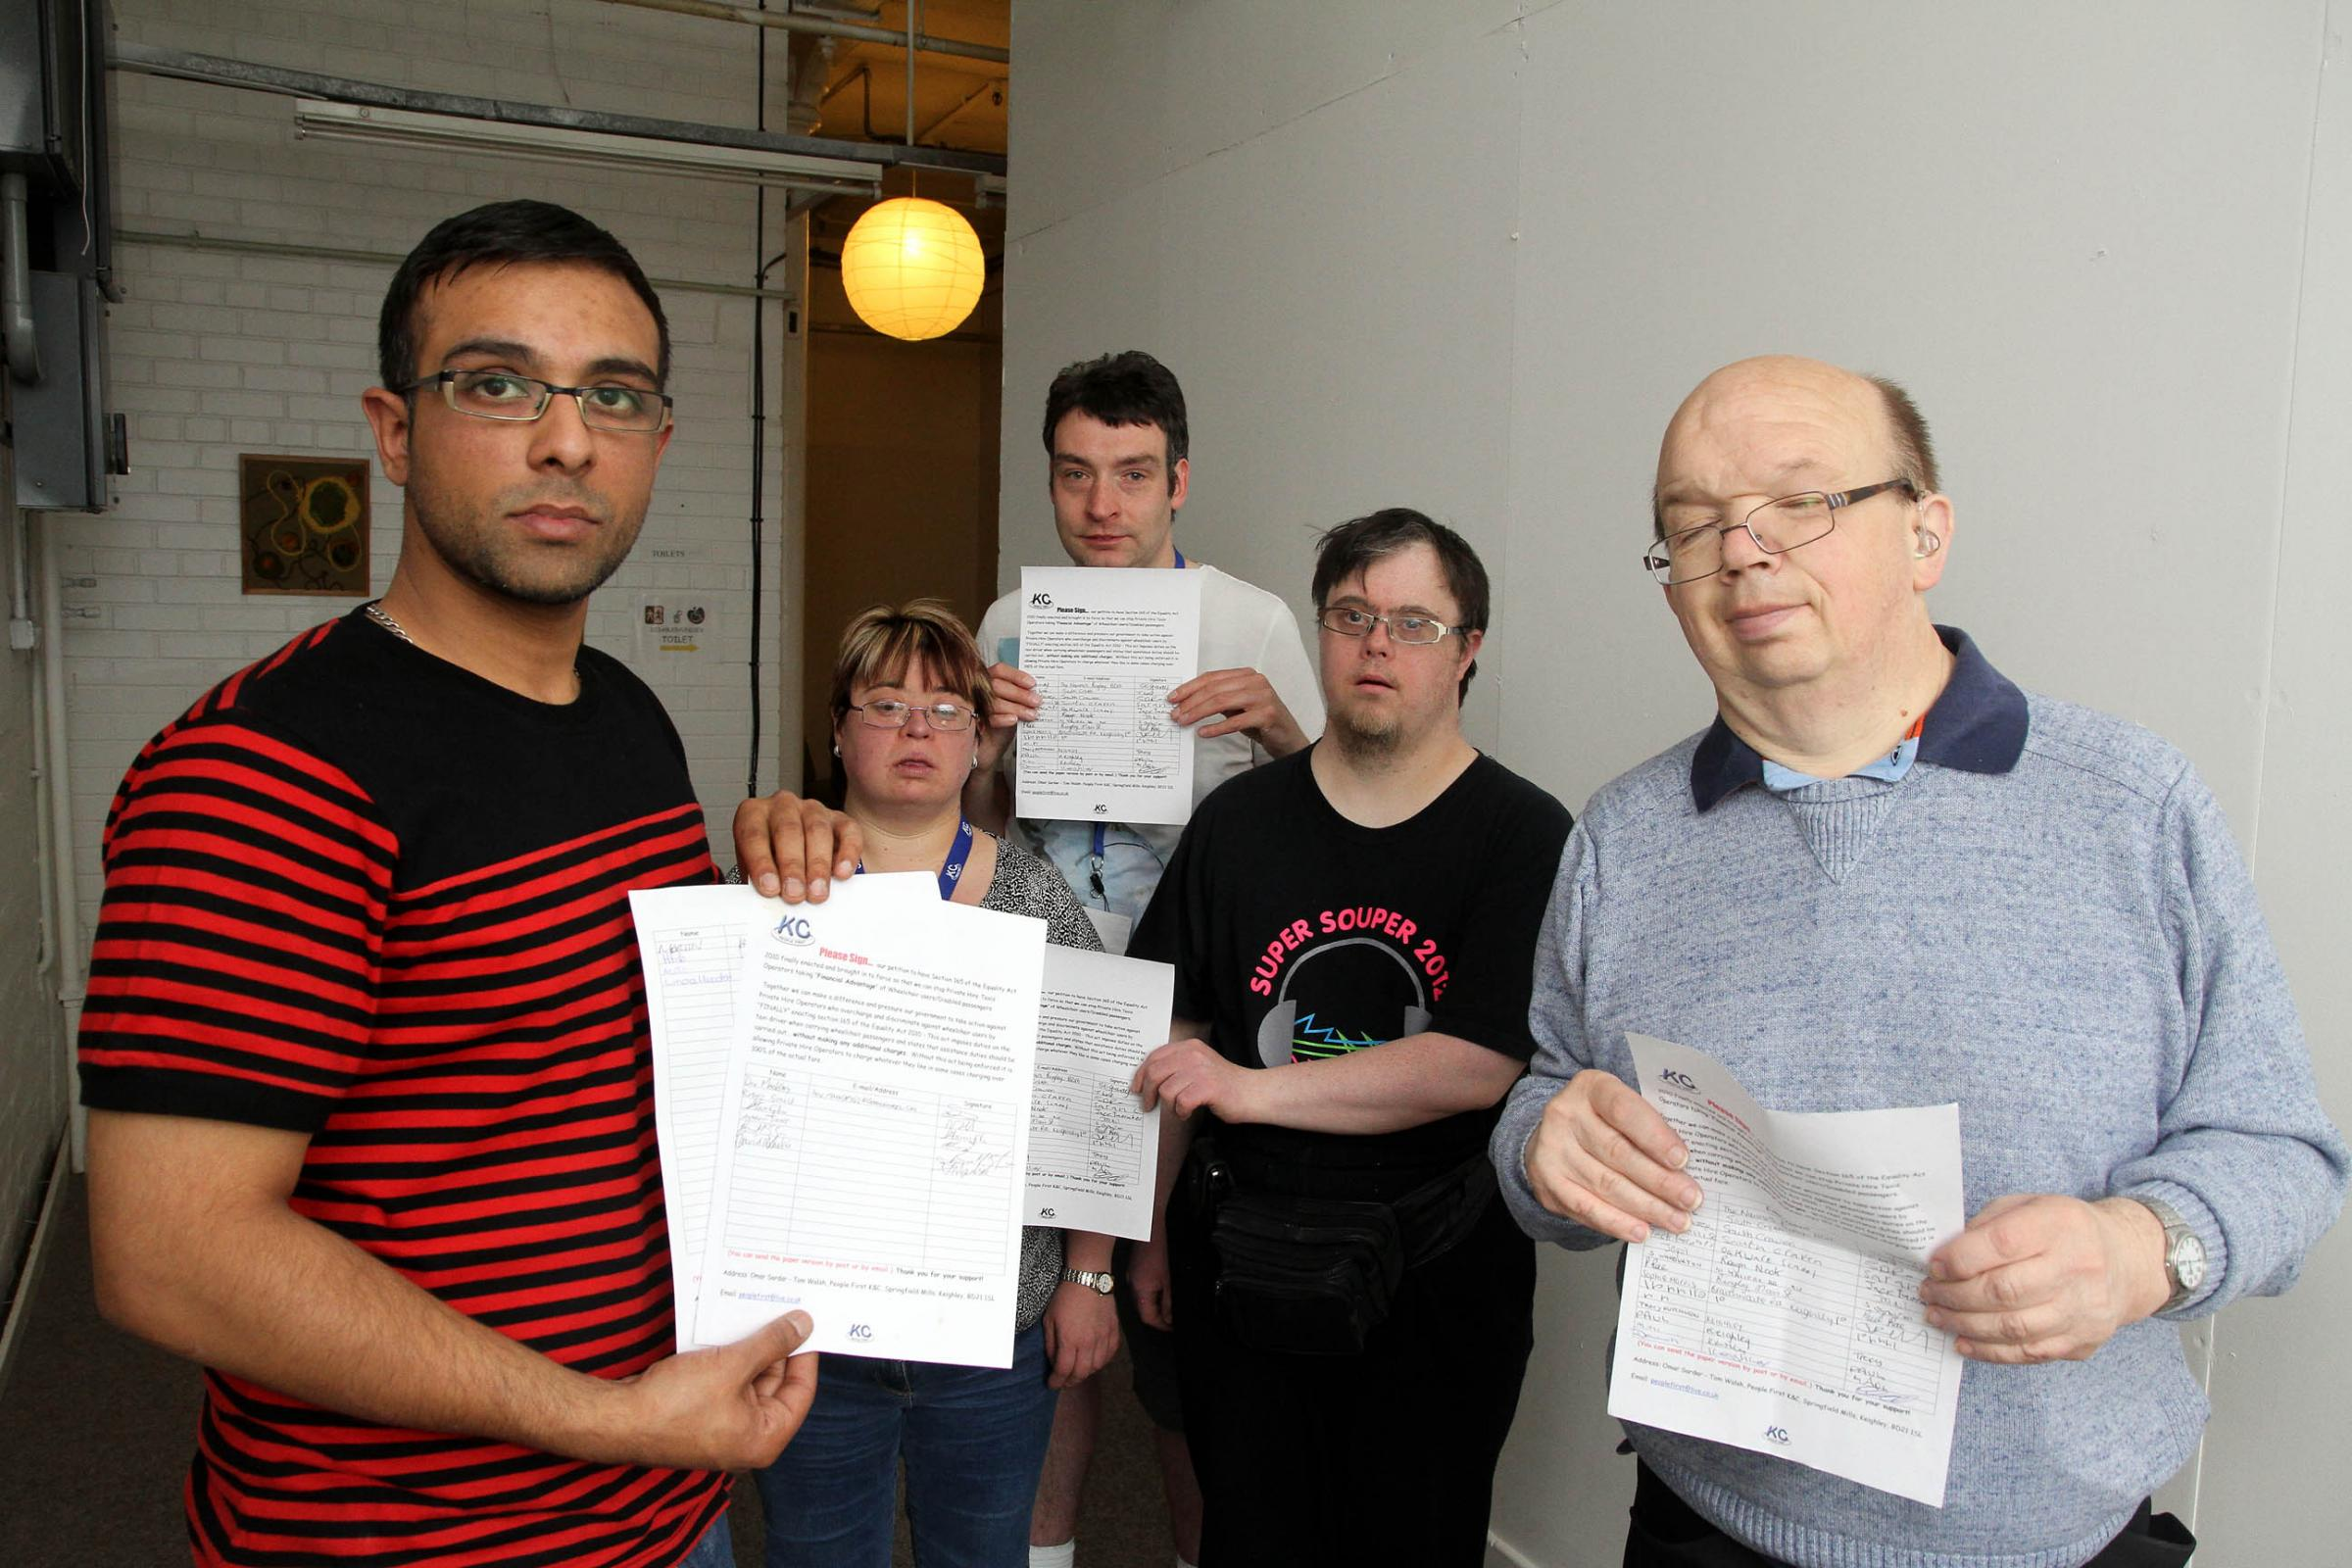 Members of People First, from left, Omar Sardar, Sarah Clapperton, Adam Parke, Stephen Whiteside and Tim Pickles with copies of the petition calling for fair taxi fares